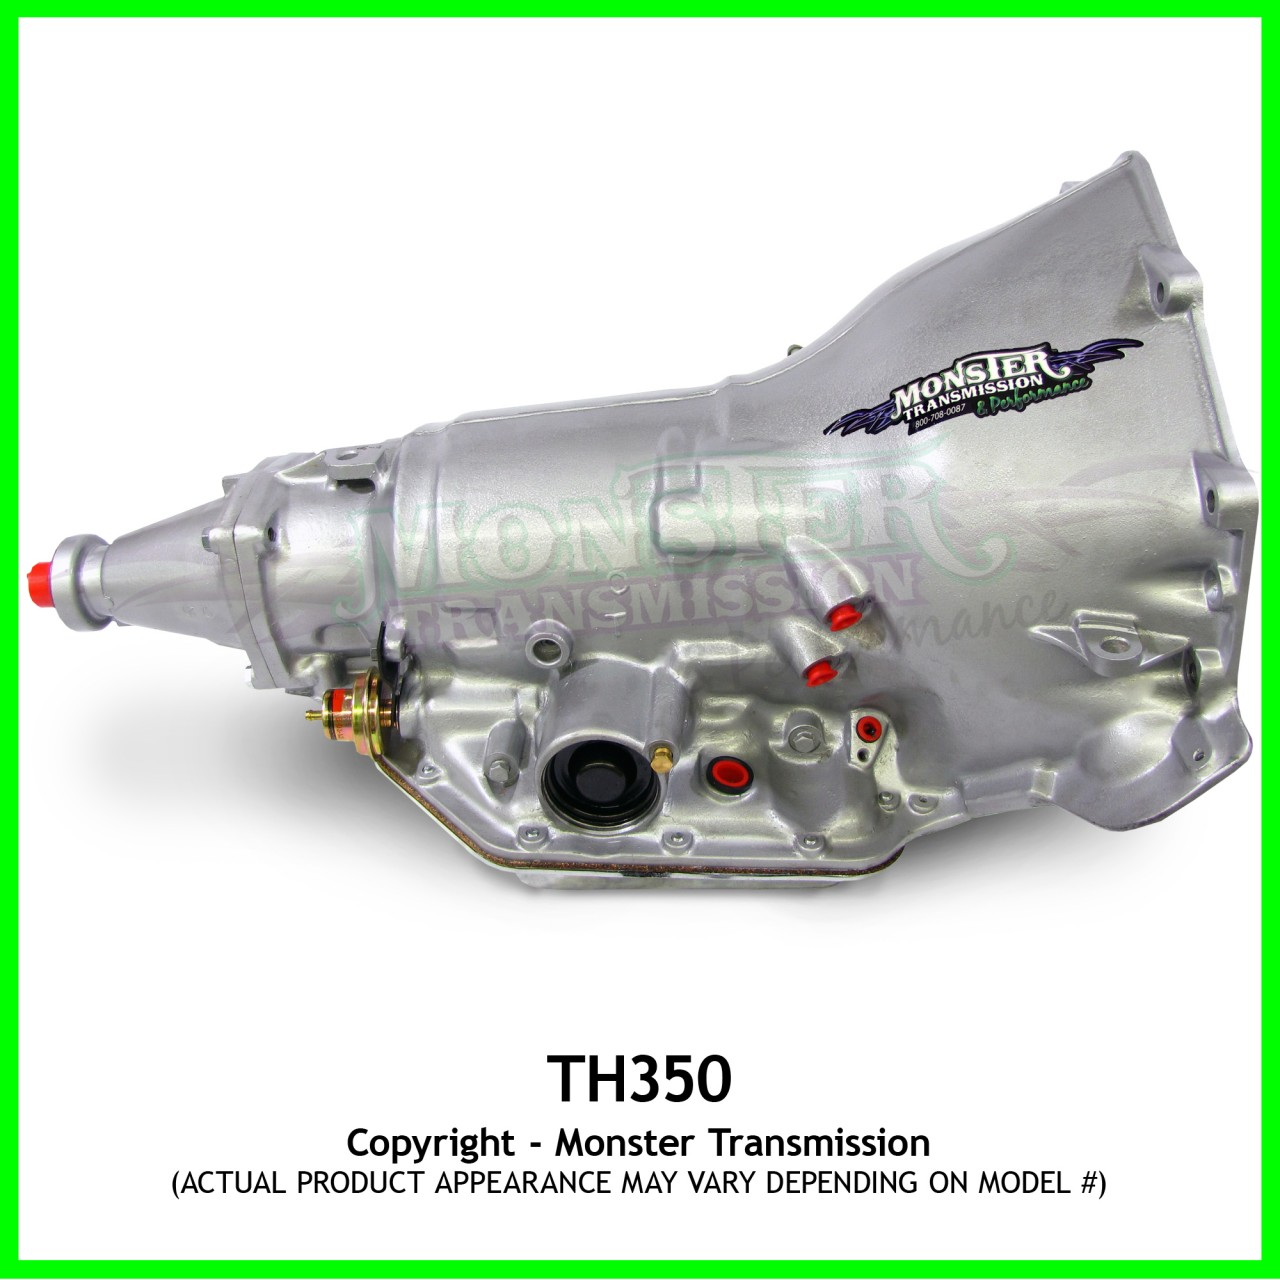 Turbo 350 Transmission on Chevrolet Part Diagram